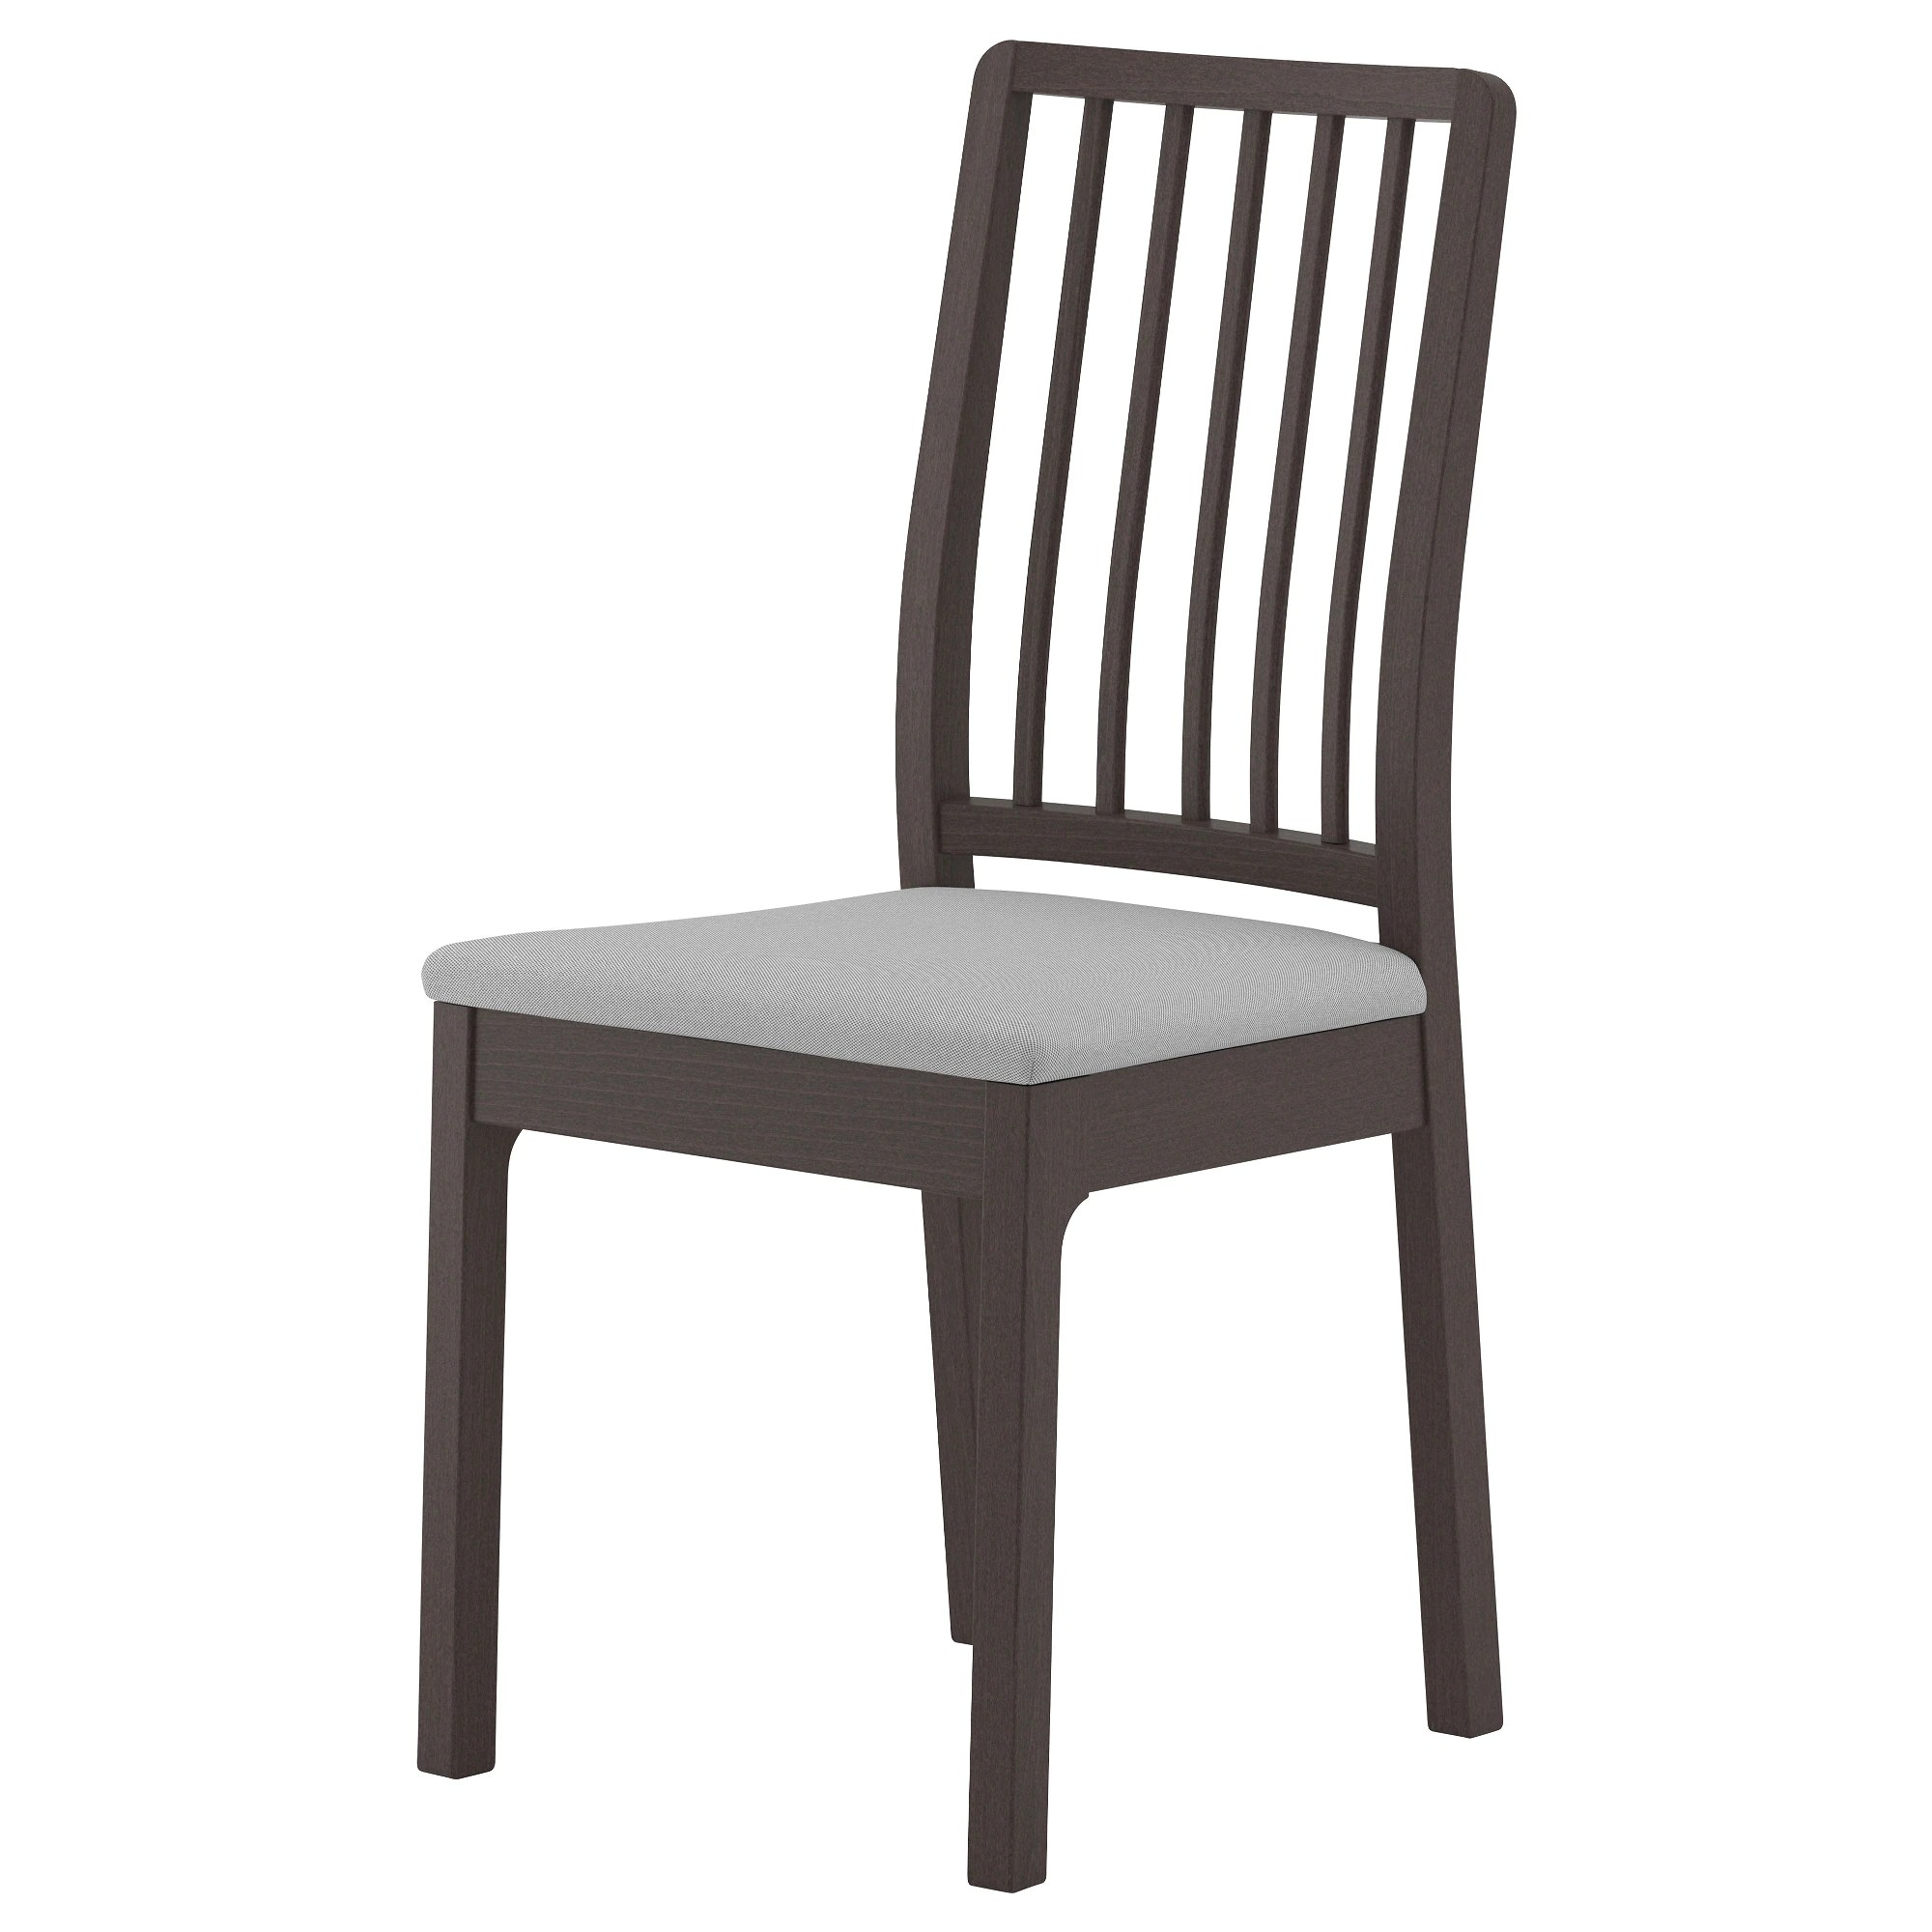 the chair antique folding wooden chairs ekedalen ikea feedback